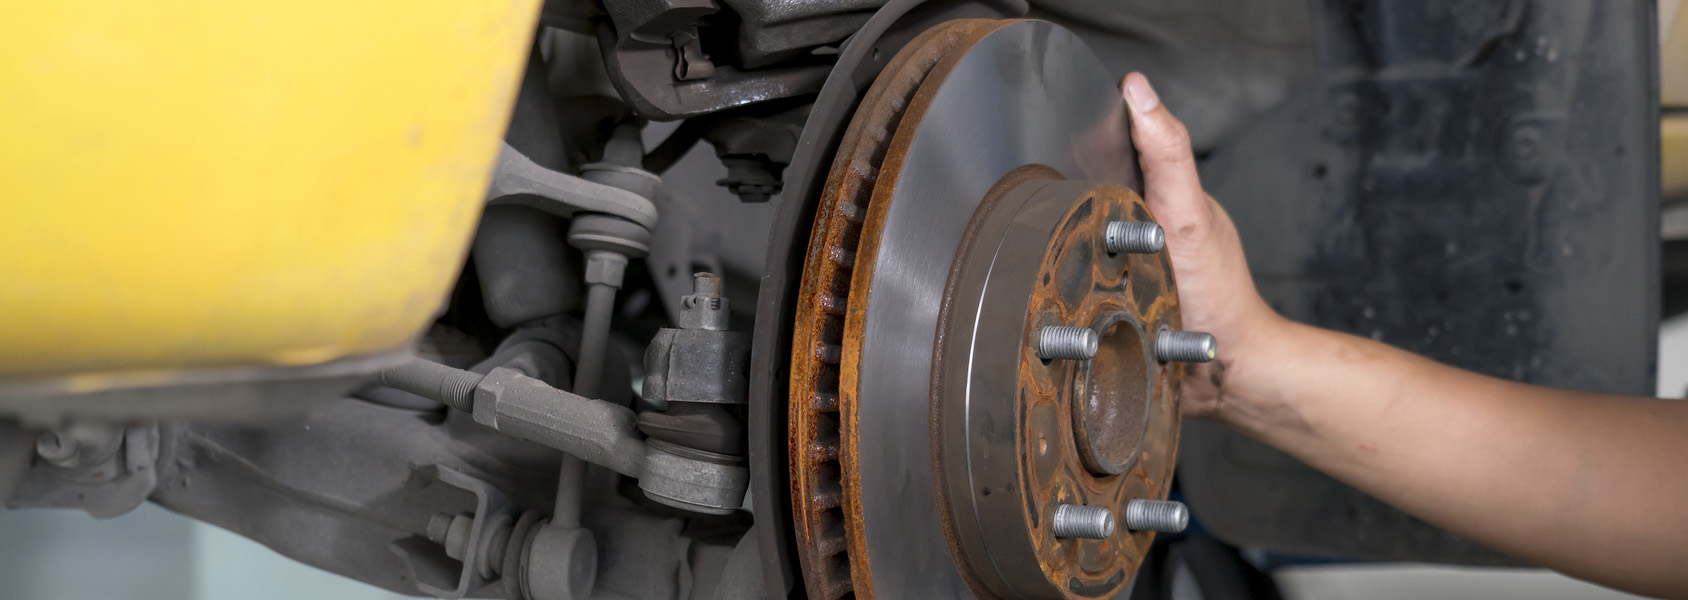 Car mechanic replacing wheel brake shoes of lifted automobile at repair service station.